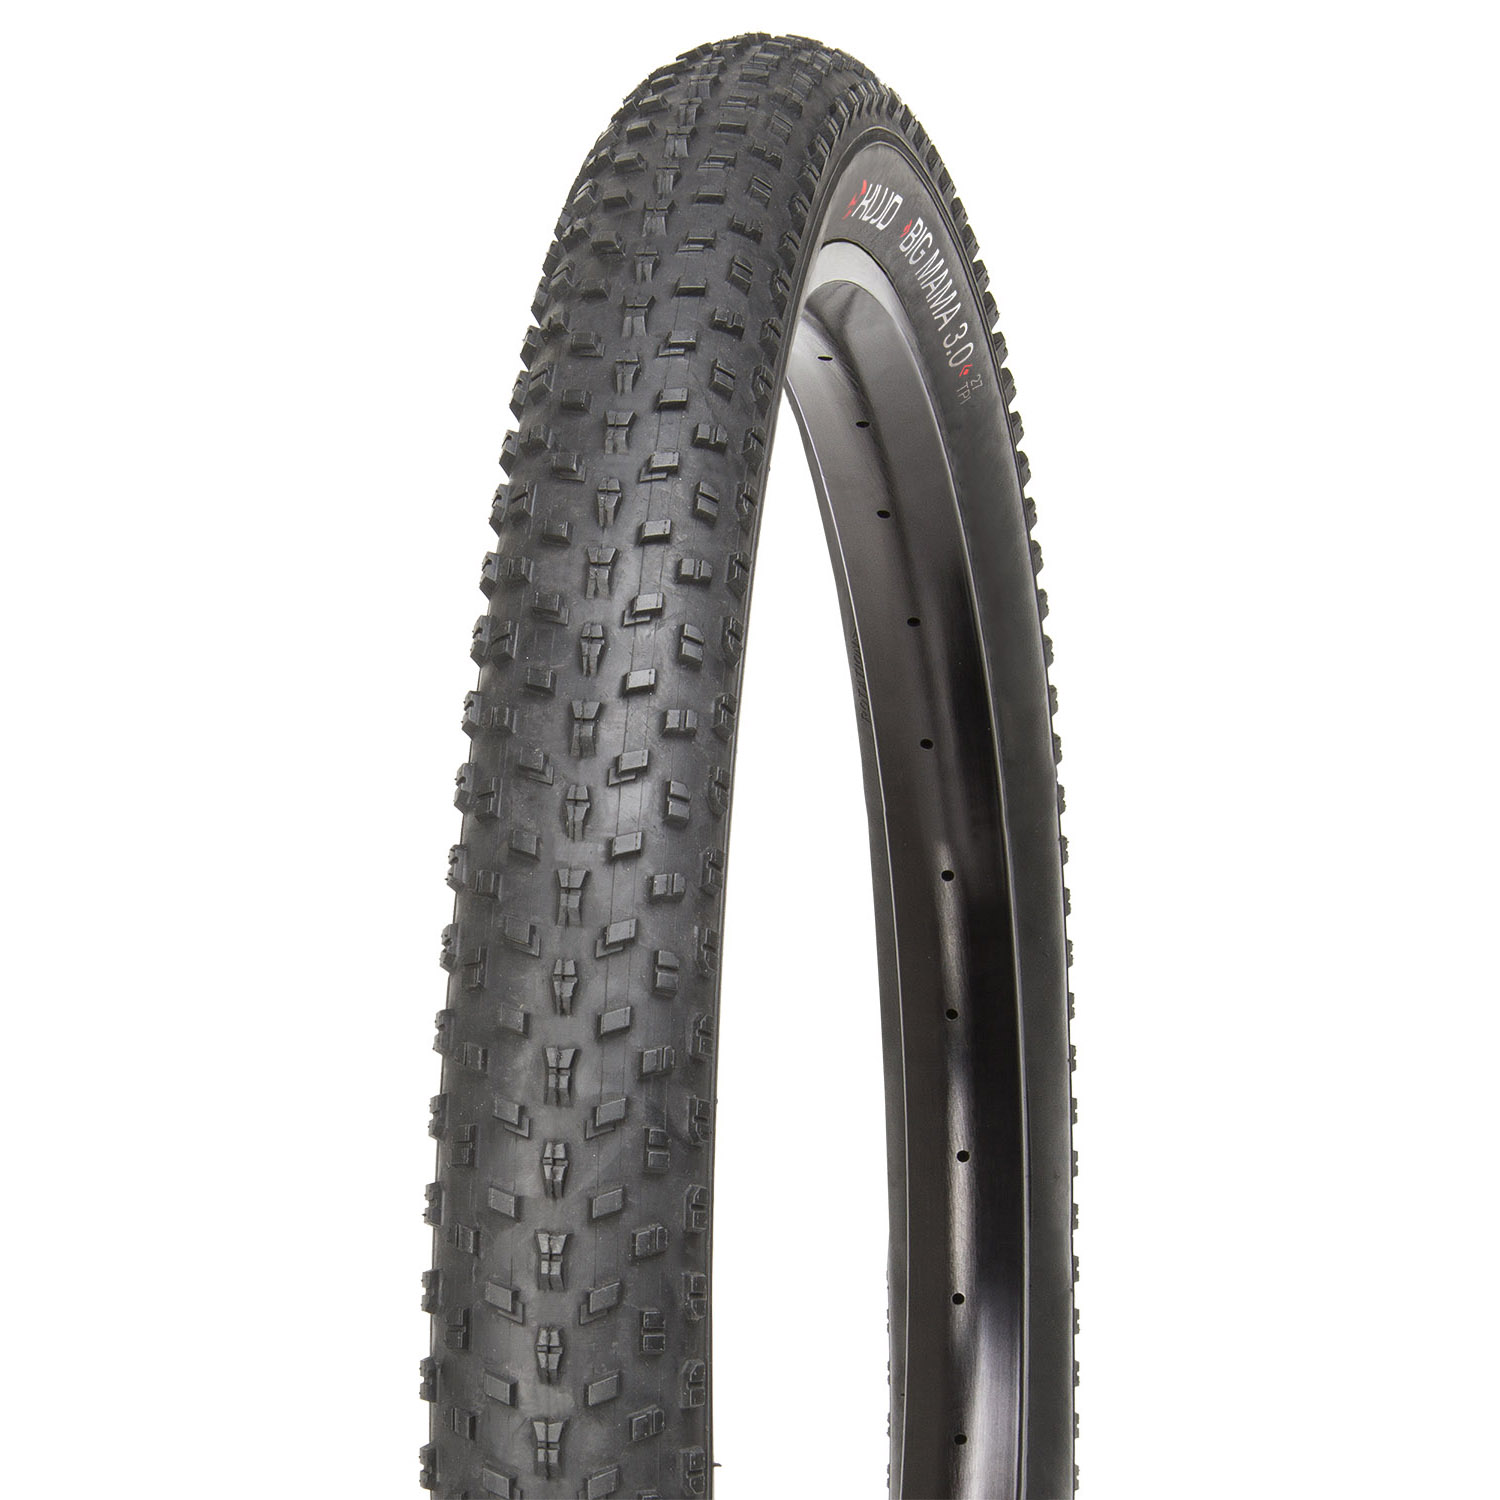 Big Mama 26 x 4.0 Fat Tire Wire Bead Tire